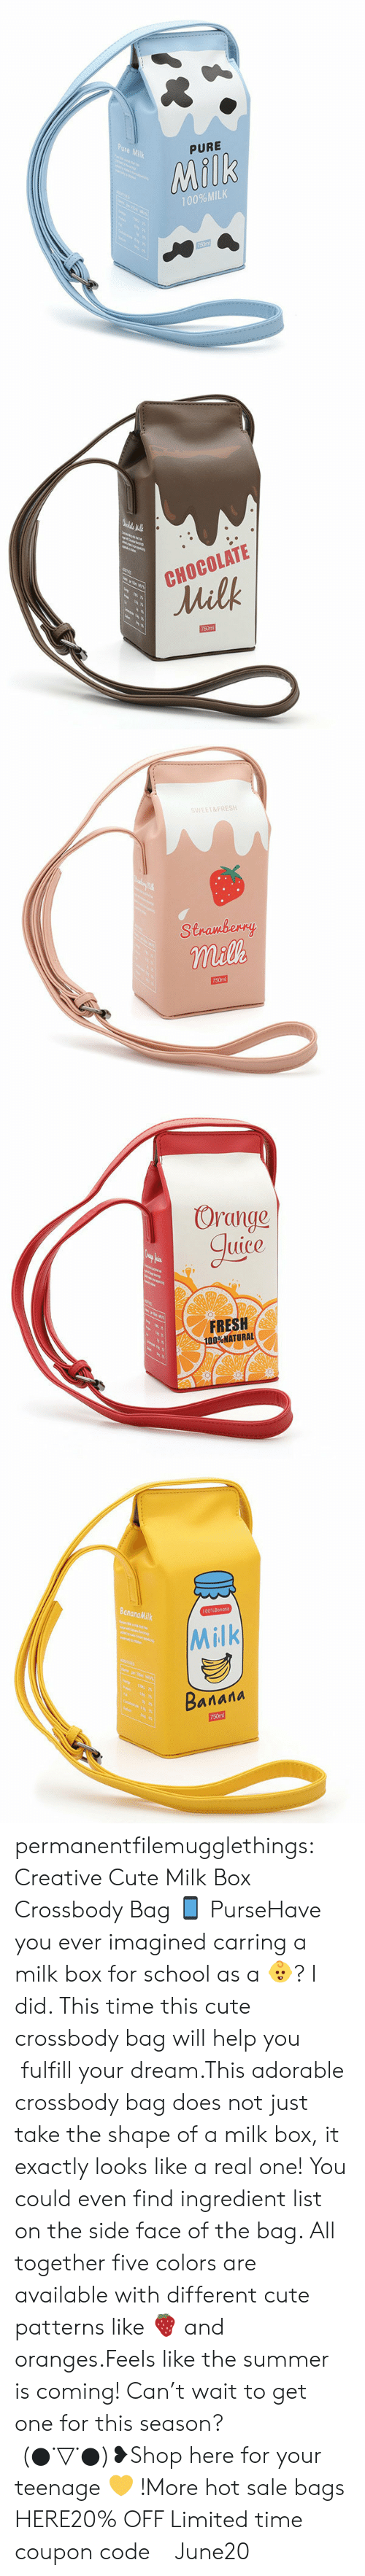 oranges: Pure Milk  PURE  Milk  100%MILK  750ml   CHOCOLATE  Milk  750m   WEET&FRESH  Stramberry  milk  750m   Orange  guice  ant  FRESH  100%NATURAL   BananaMilk  100%Bonana  Milk  riteng  Baлала  750m permanentfilemugglethings:  Creative Cute Milk Box Crossbody Bag 📱 PurseHave you ever imagined carring a milk box for school as a 👶? I did. This time this cute crossbody bag will help you fulfill your dream.This adorable crossbody bag does not just take the shape of a milk box, it exactly looks like a real one! You could even find ingredient list on the side face of the bag. All together five colors are available with different cute patterns like 🍓 and oranges.Feels like the summer is coming! Can't wait to get one for this season? (●˙▽˙●)❥Shop here for your teenage 💛 !More hot sale bags HERE20% OFF Limited time coupon code : June20